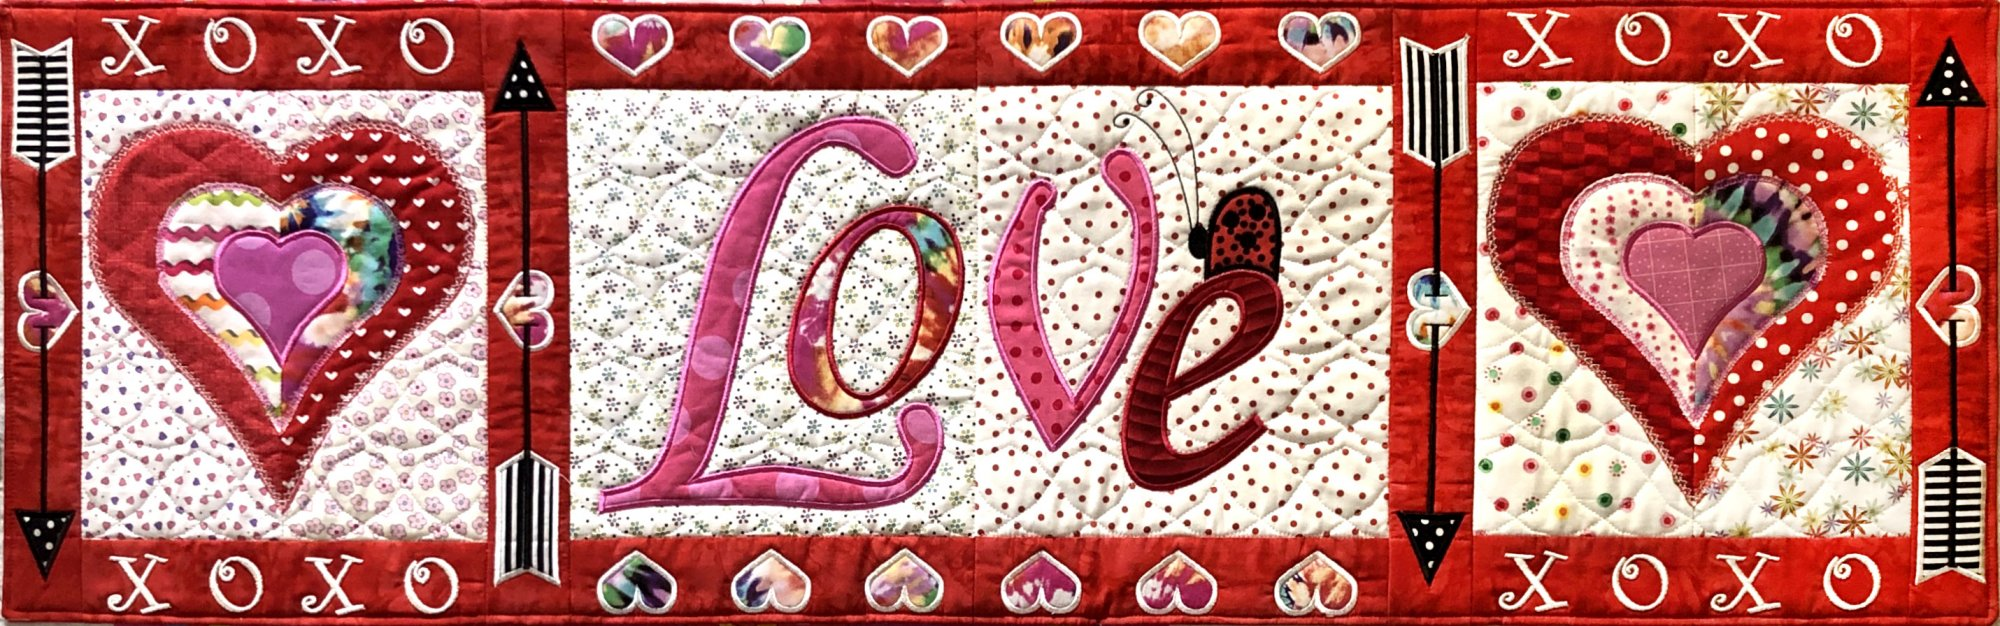 All You Need is Love ITH Table runner download only (GP-109-DDE-E)